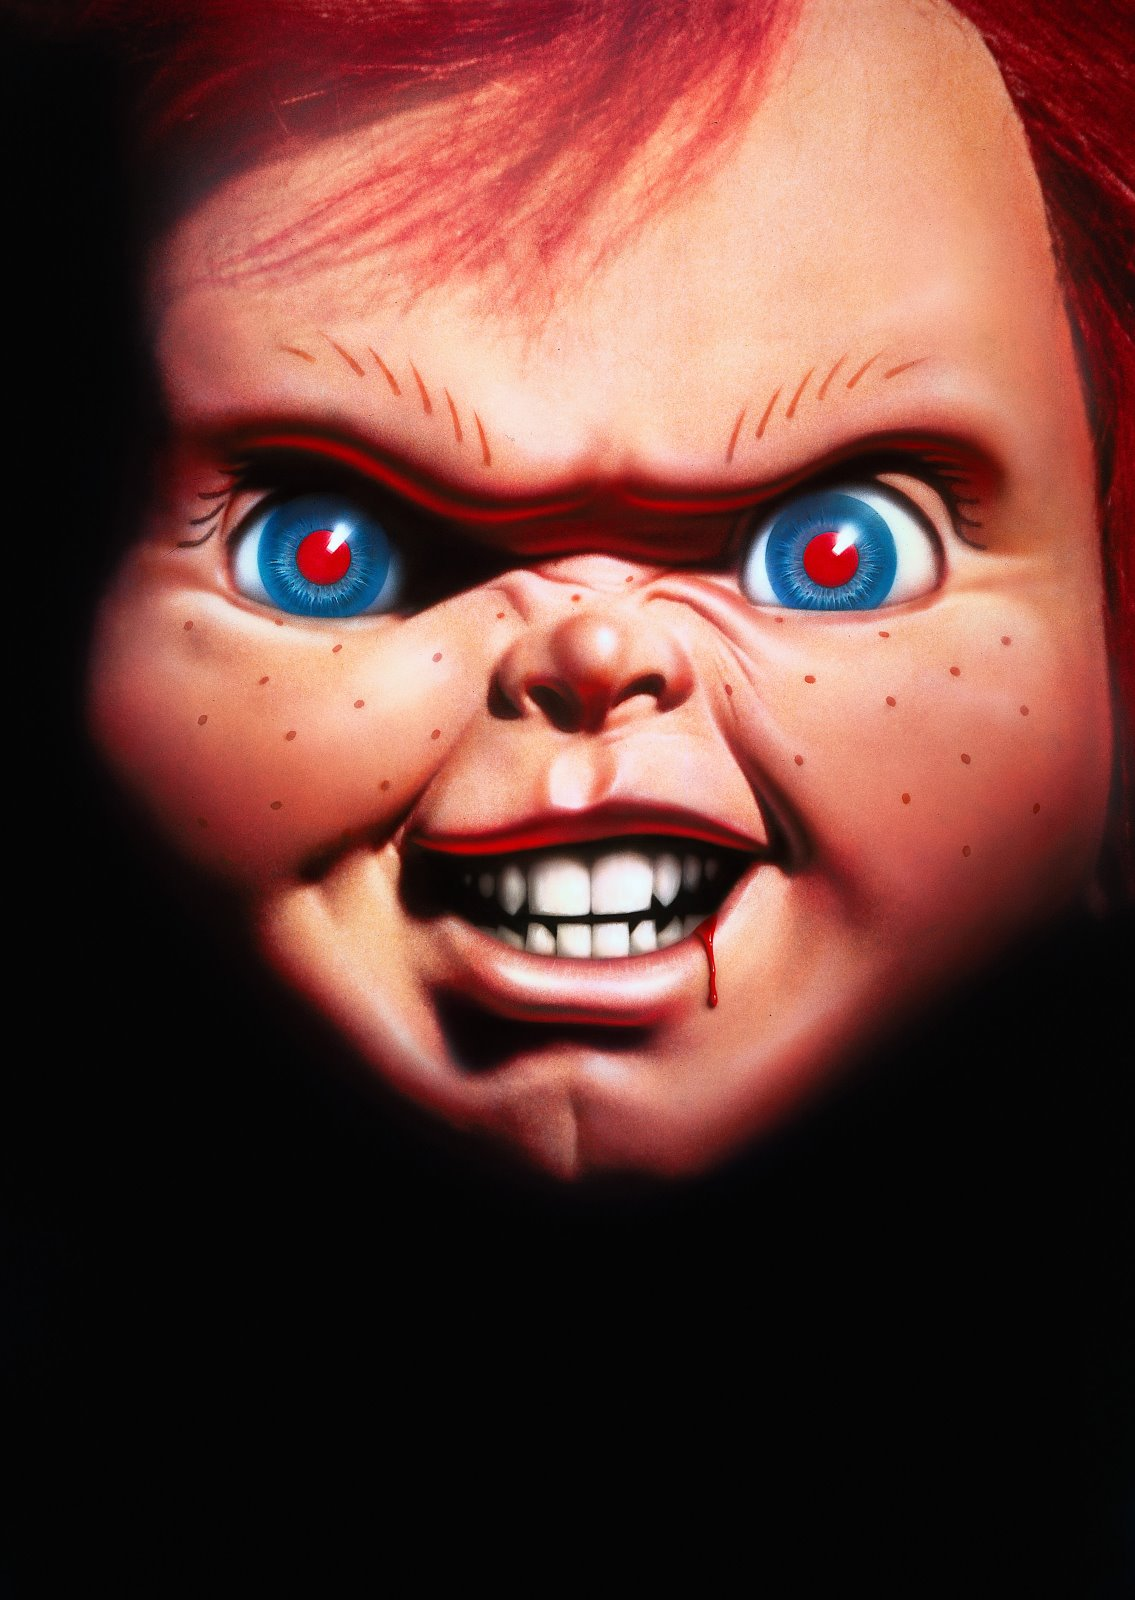 chucky chucky the killer doll photo 25650677 fanpop